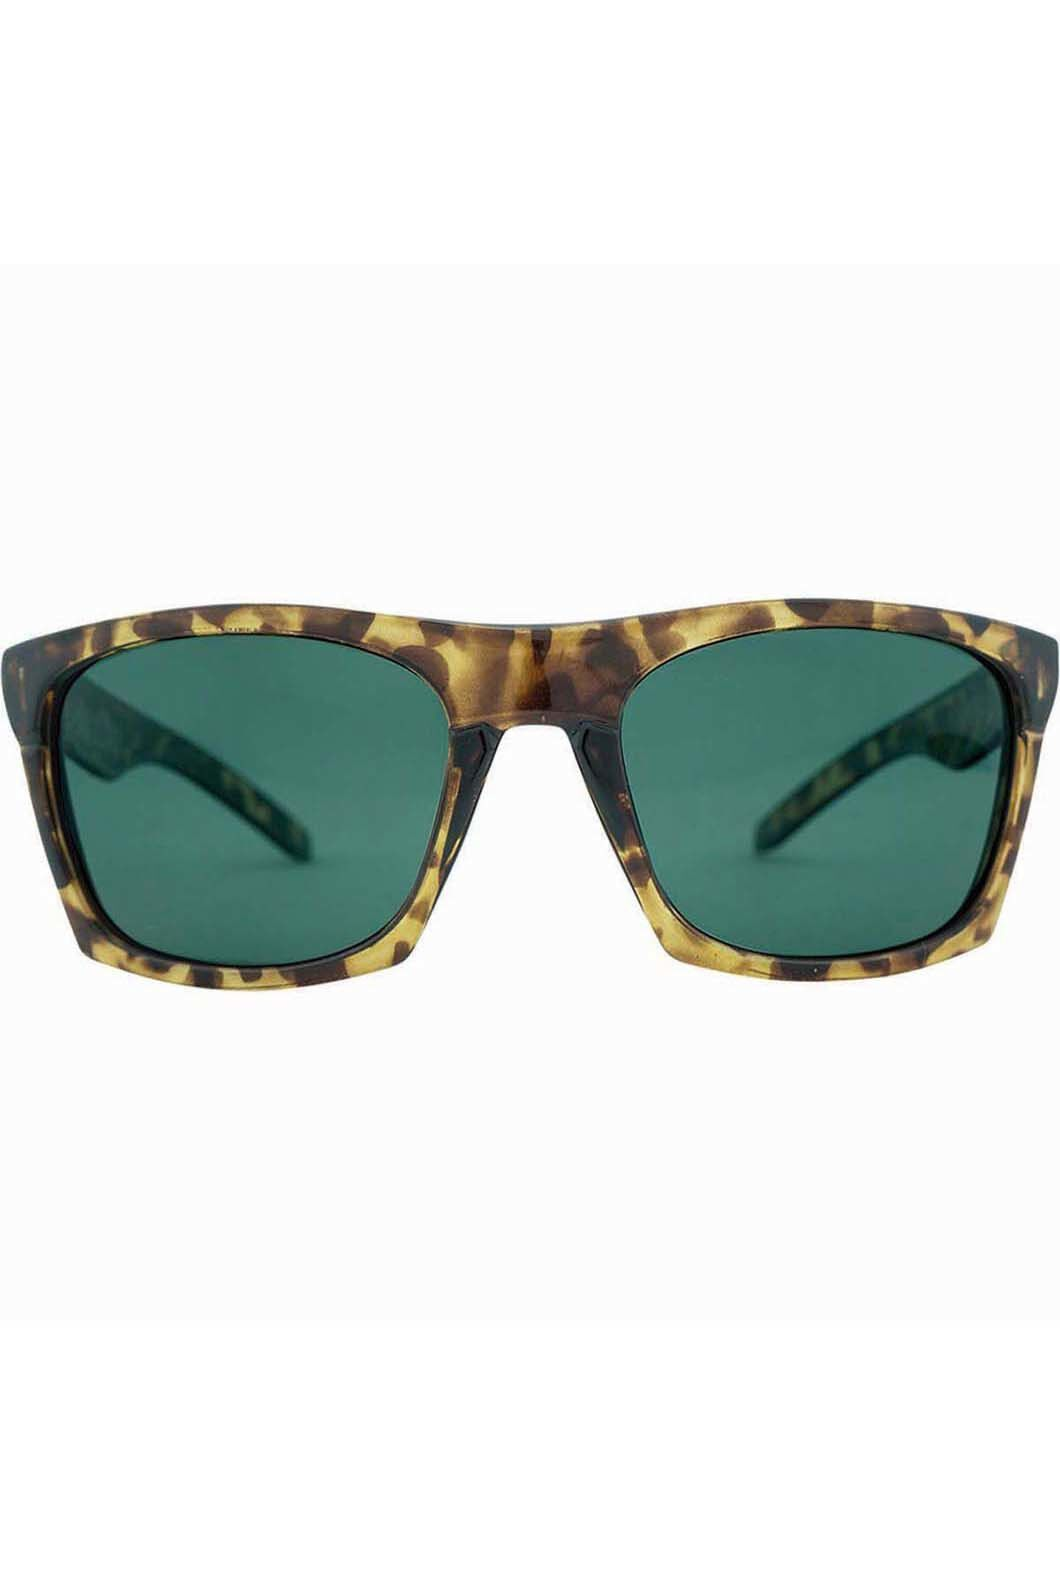 Venture Eyewear Men's Base Camp Sunglasses Matte, DEMI/G15, hi-res